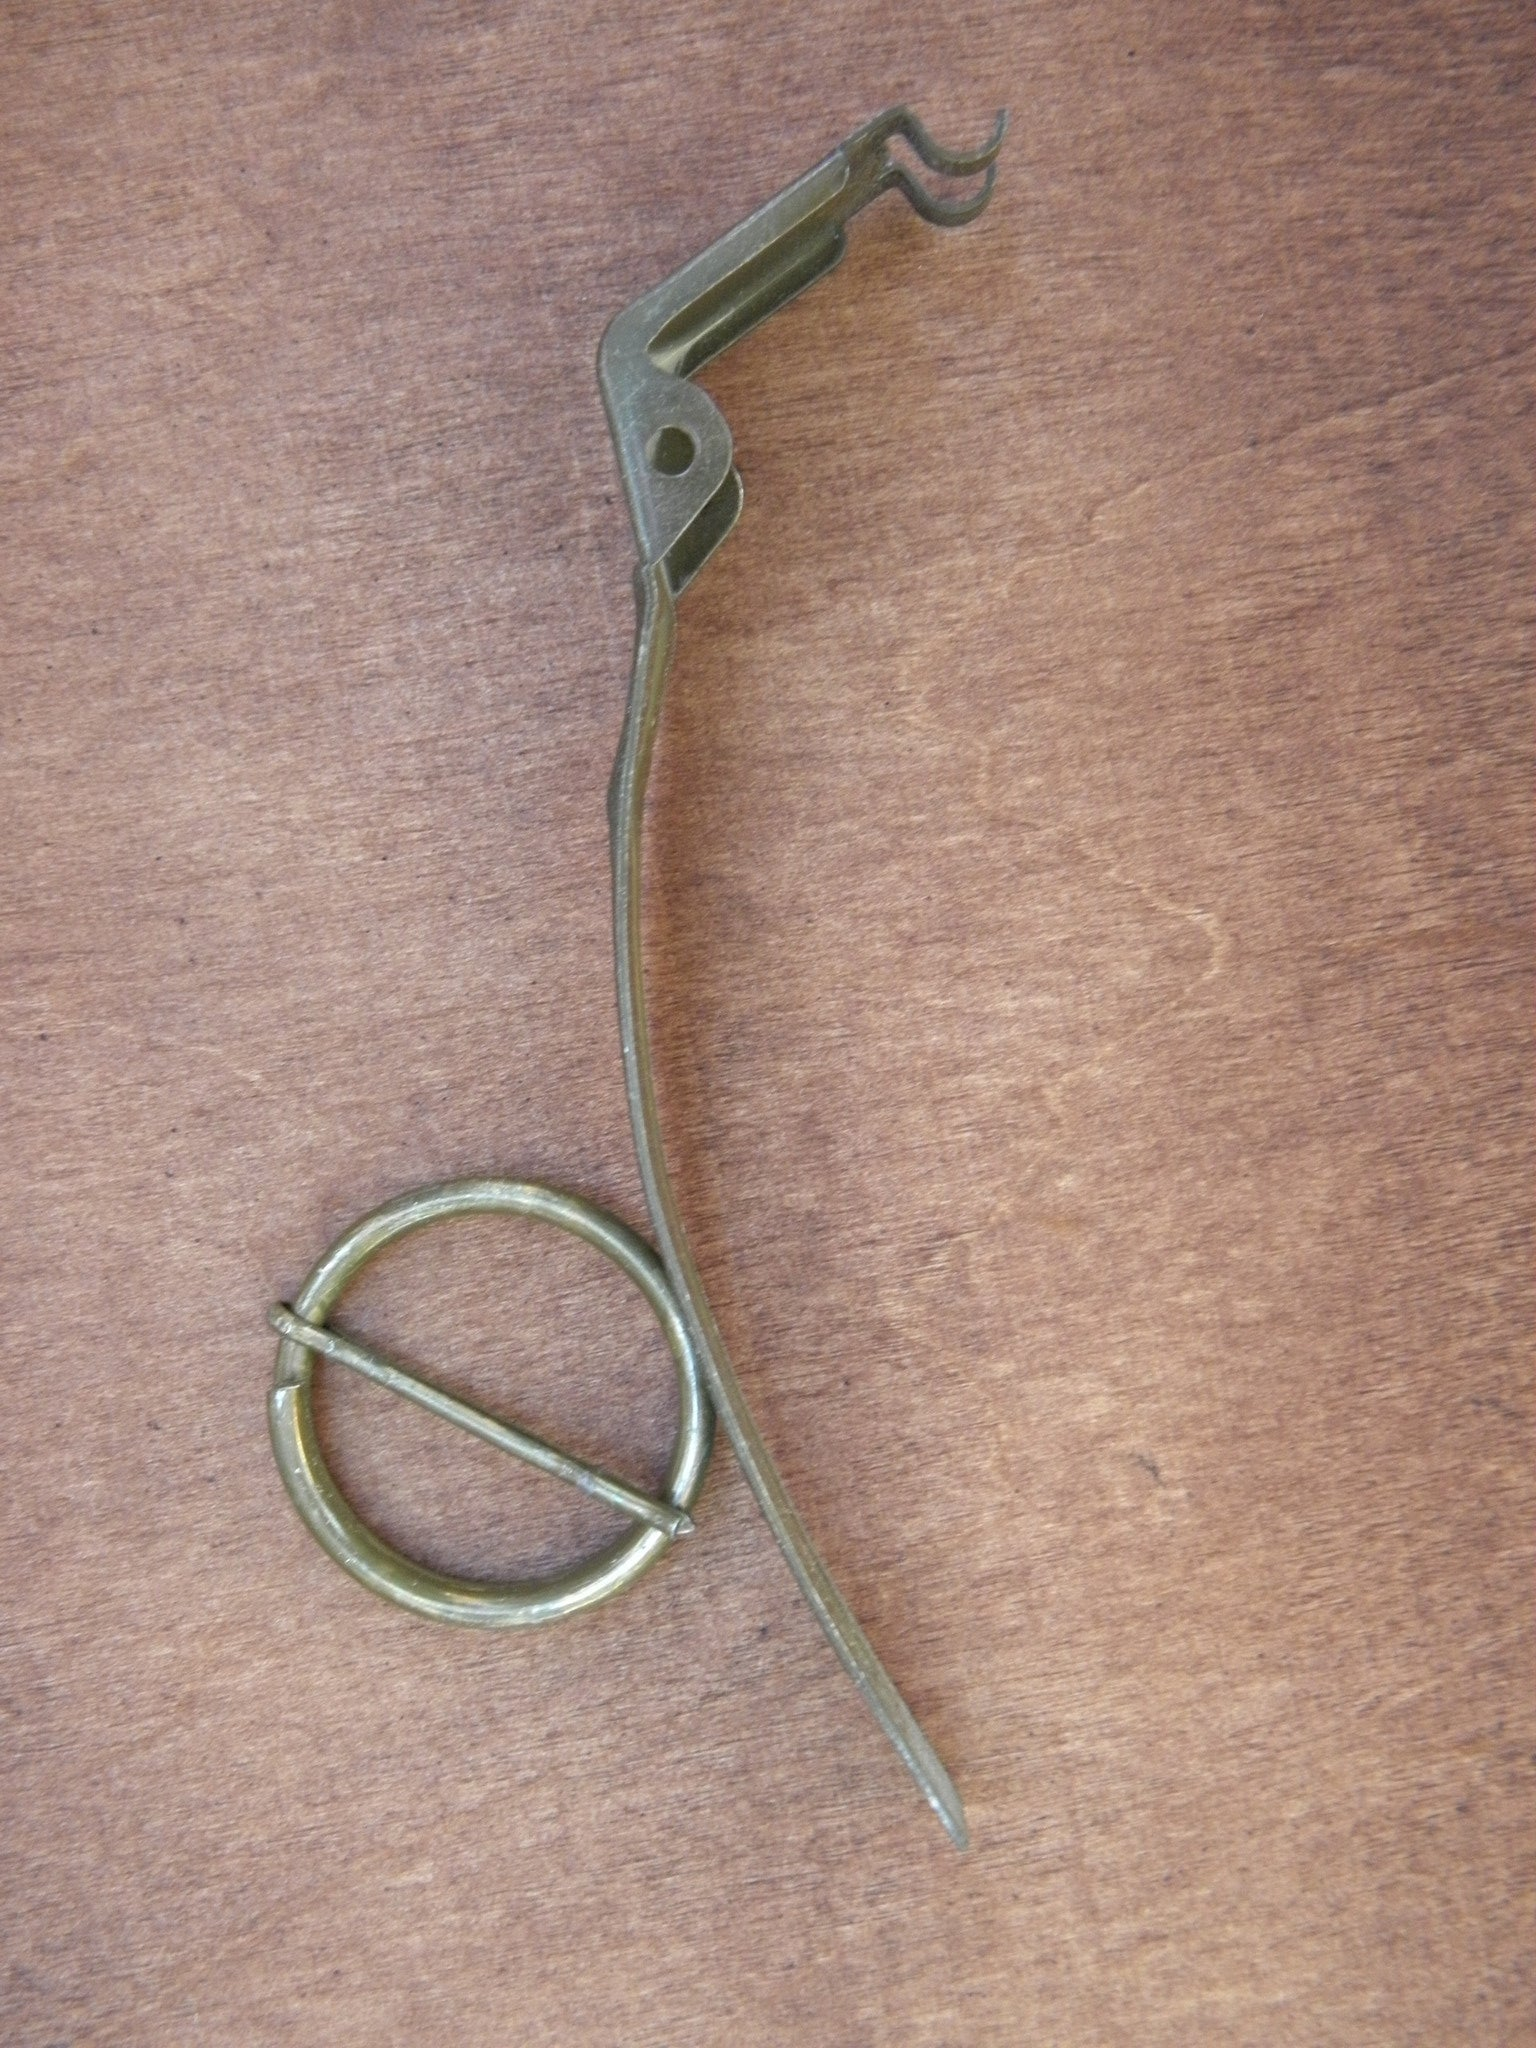 WW2 Mk2 Grenade Spoon and pin